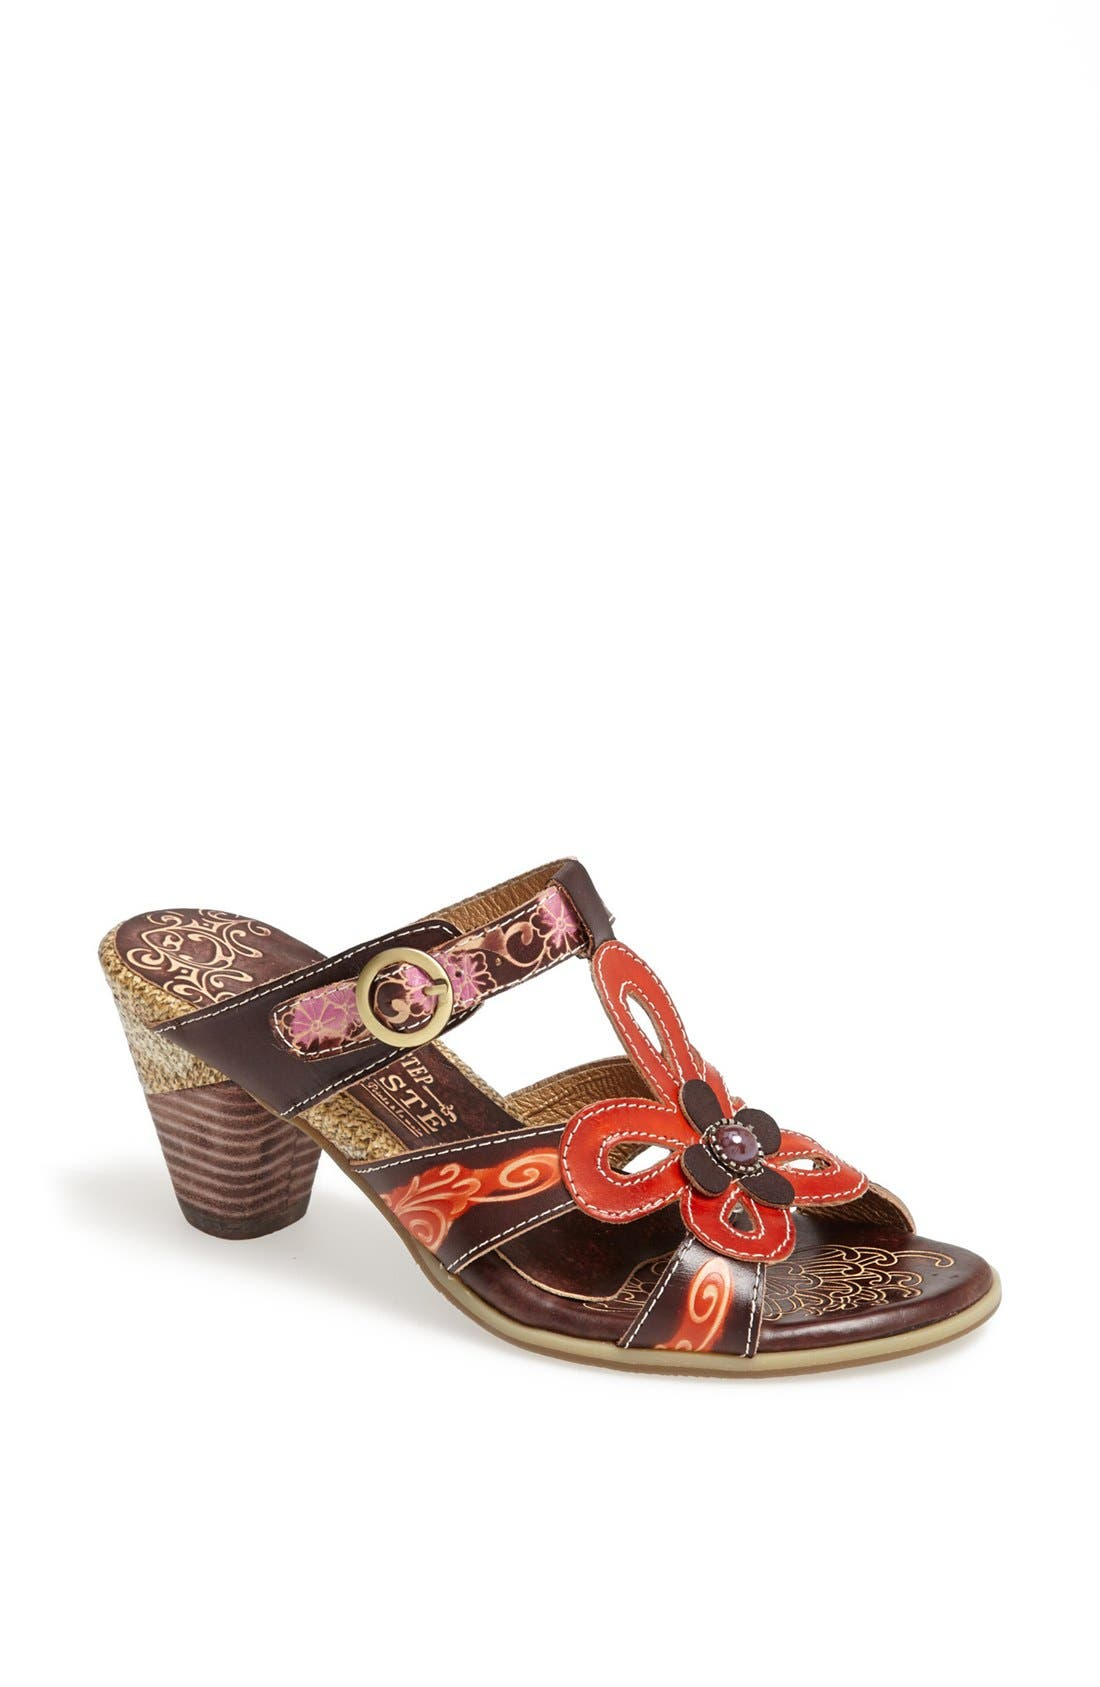 Main Image - Spring Step 'Queenie' Leather Sandal